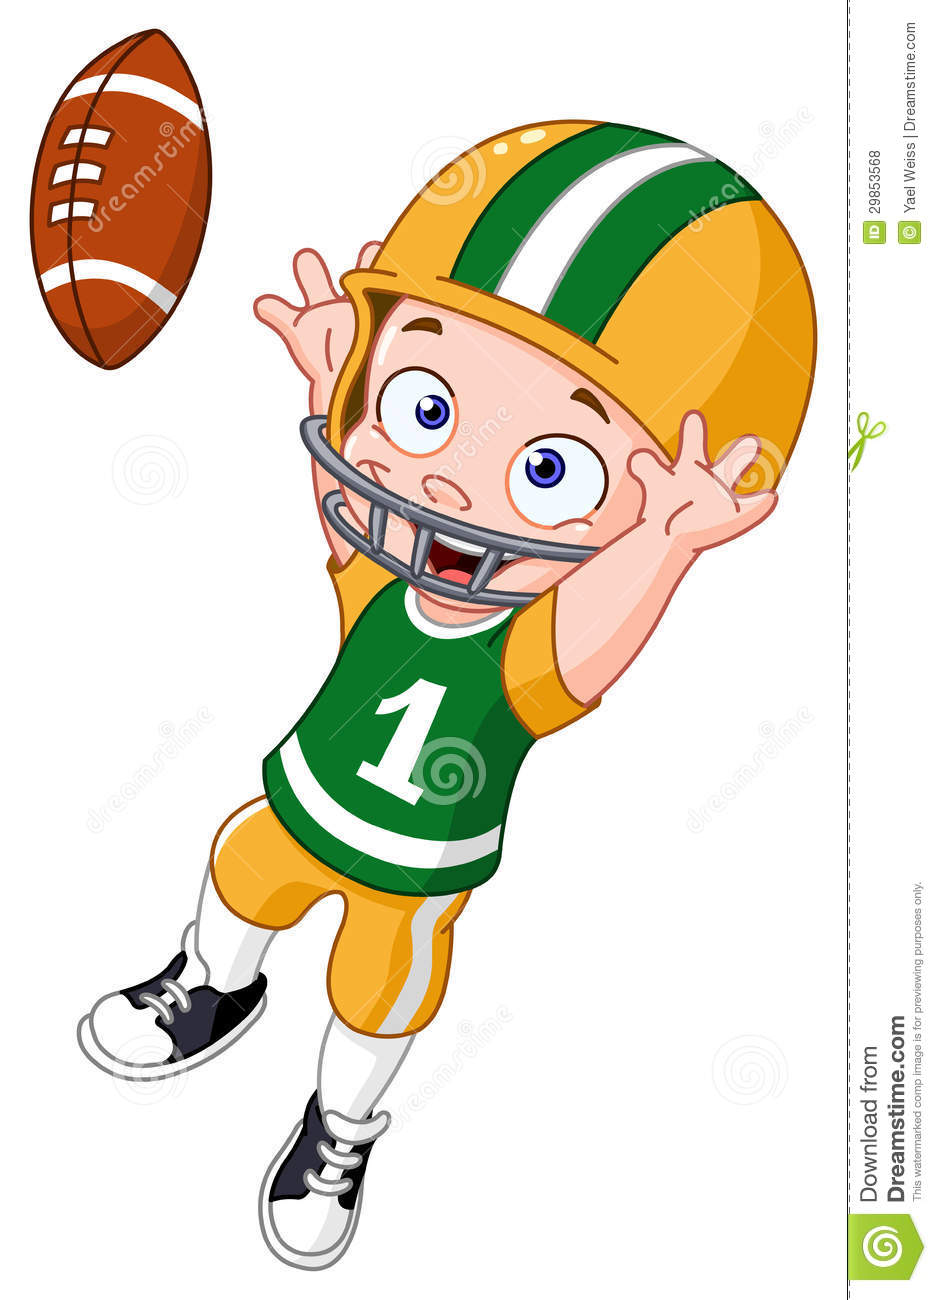 Football kid royalty free stock photos image 29853568